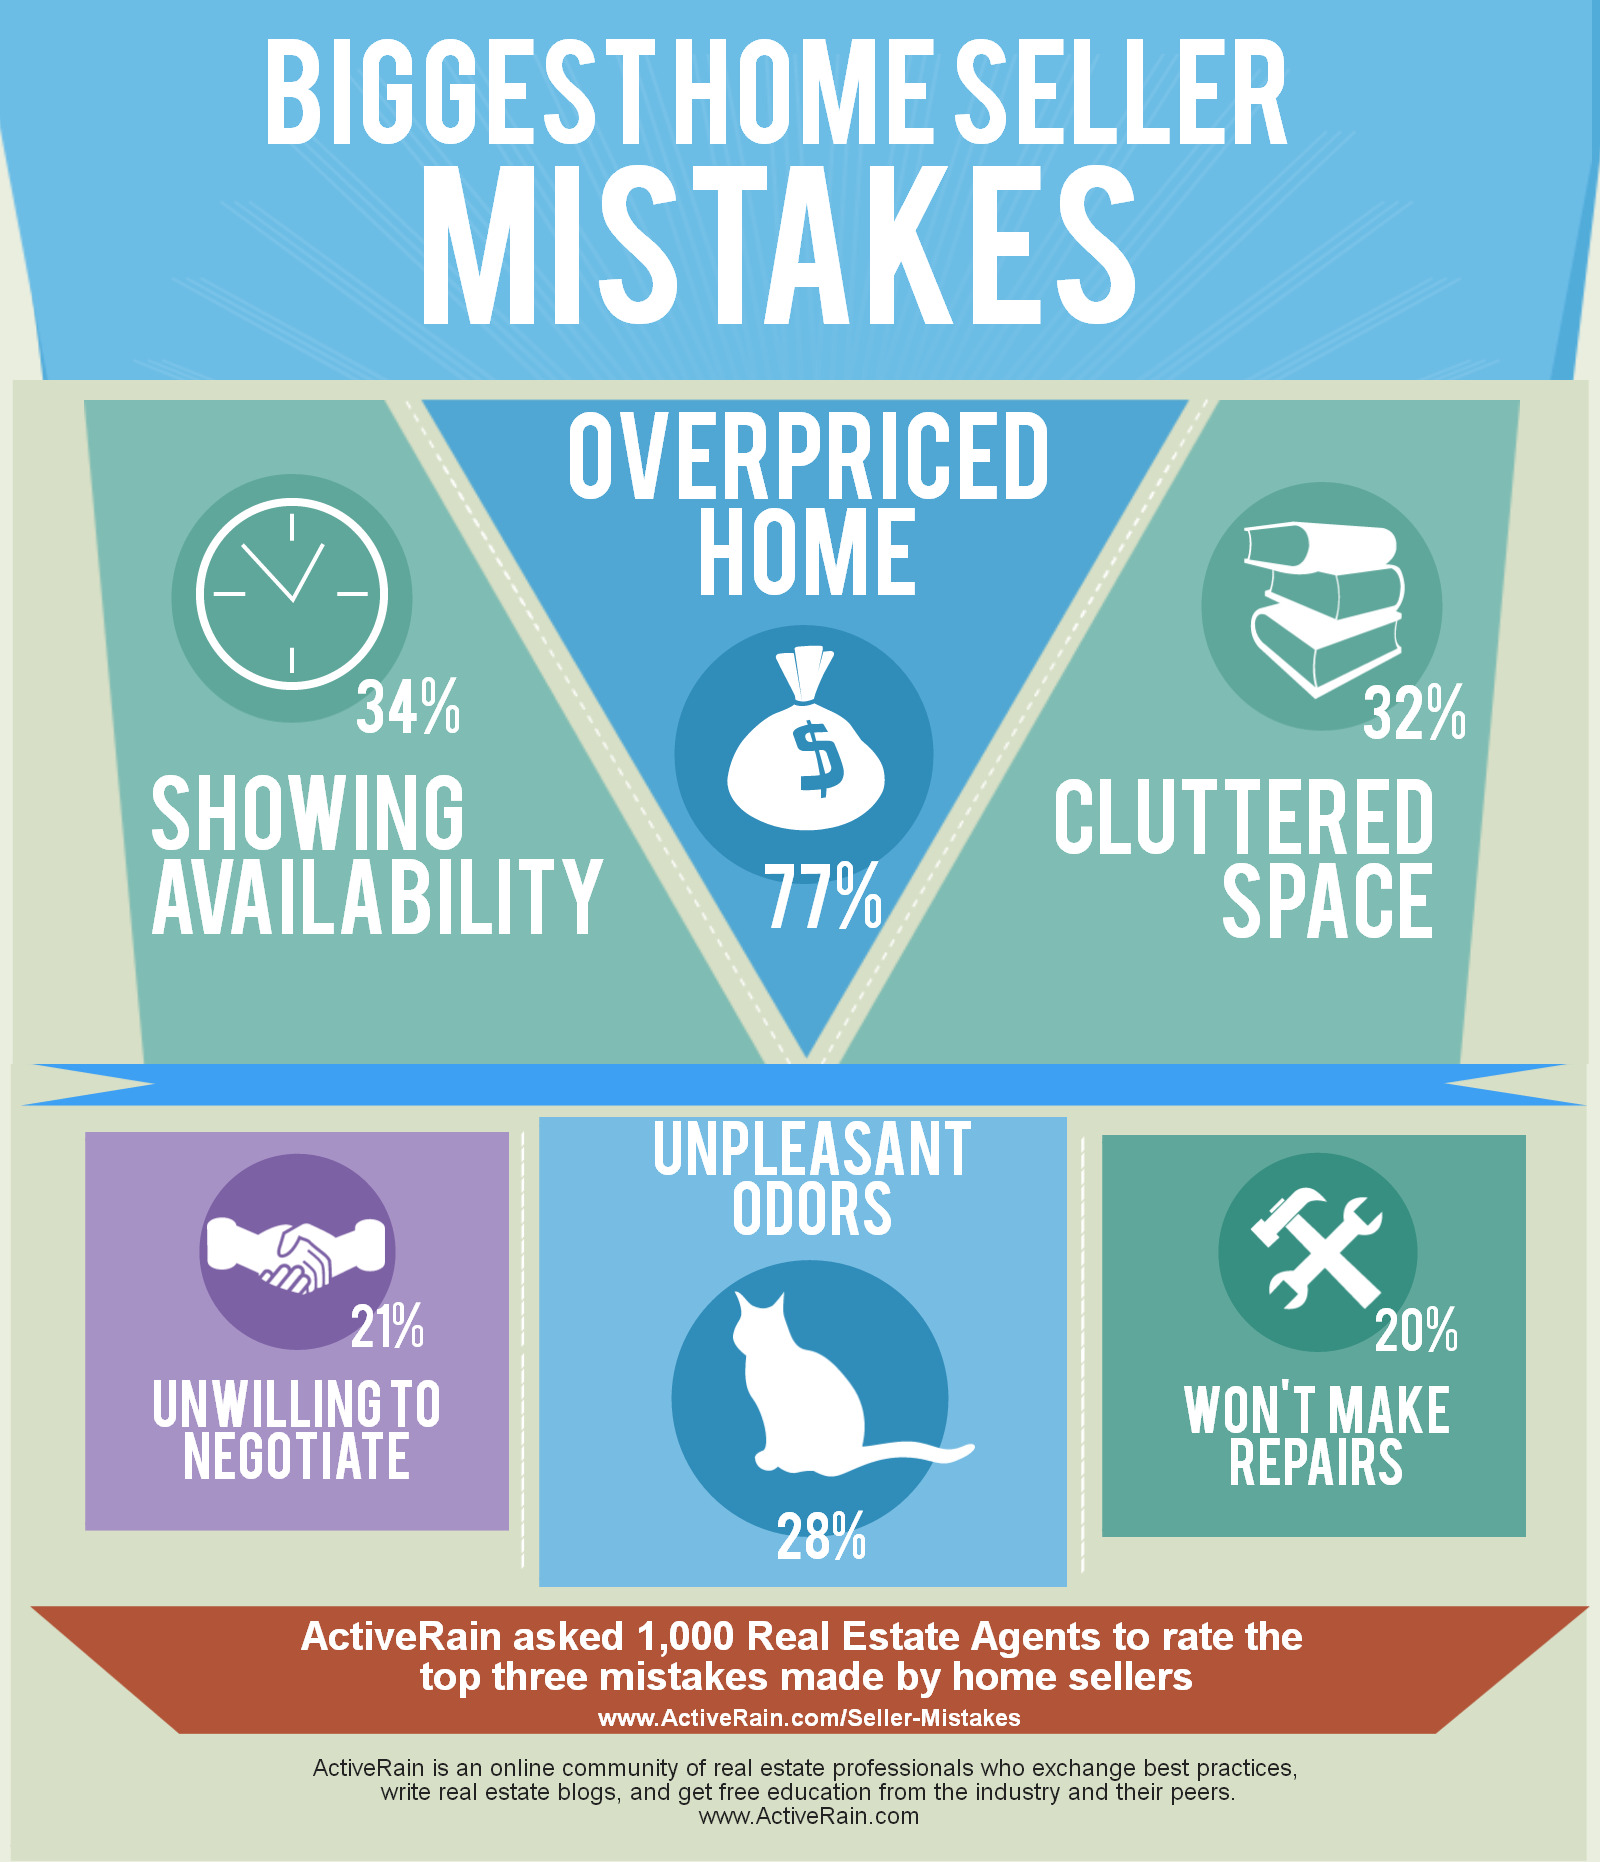 Biggest seller mistakes